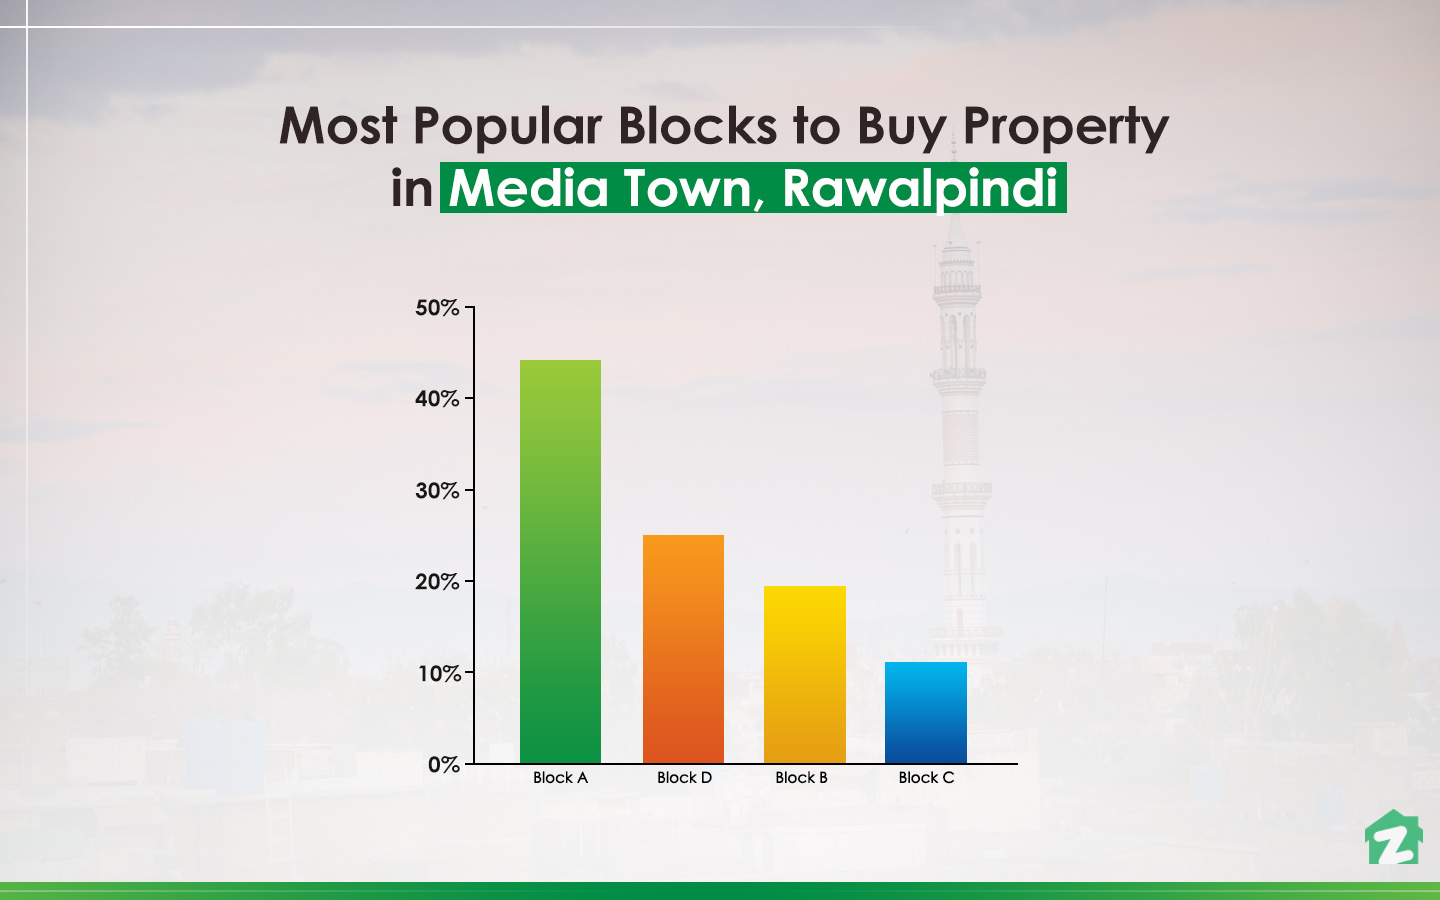 Block A is the most popular block to buy properties in Media Town